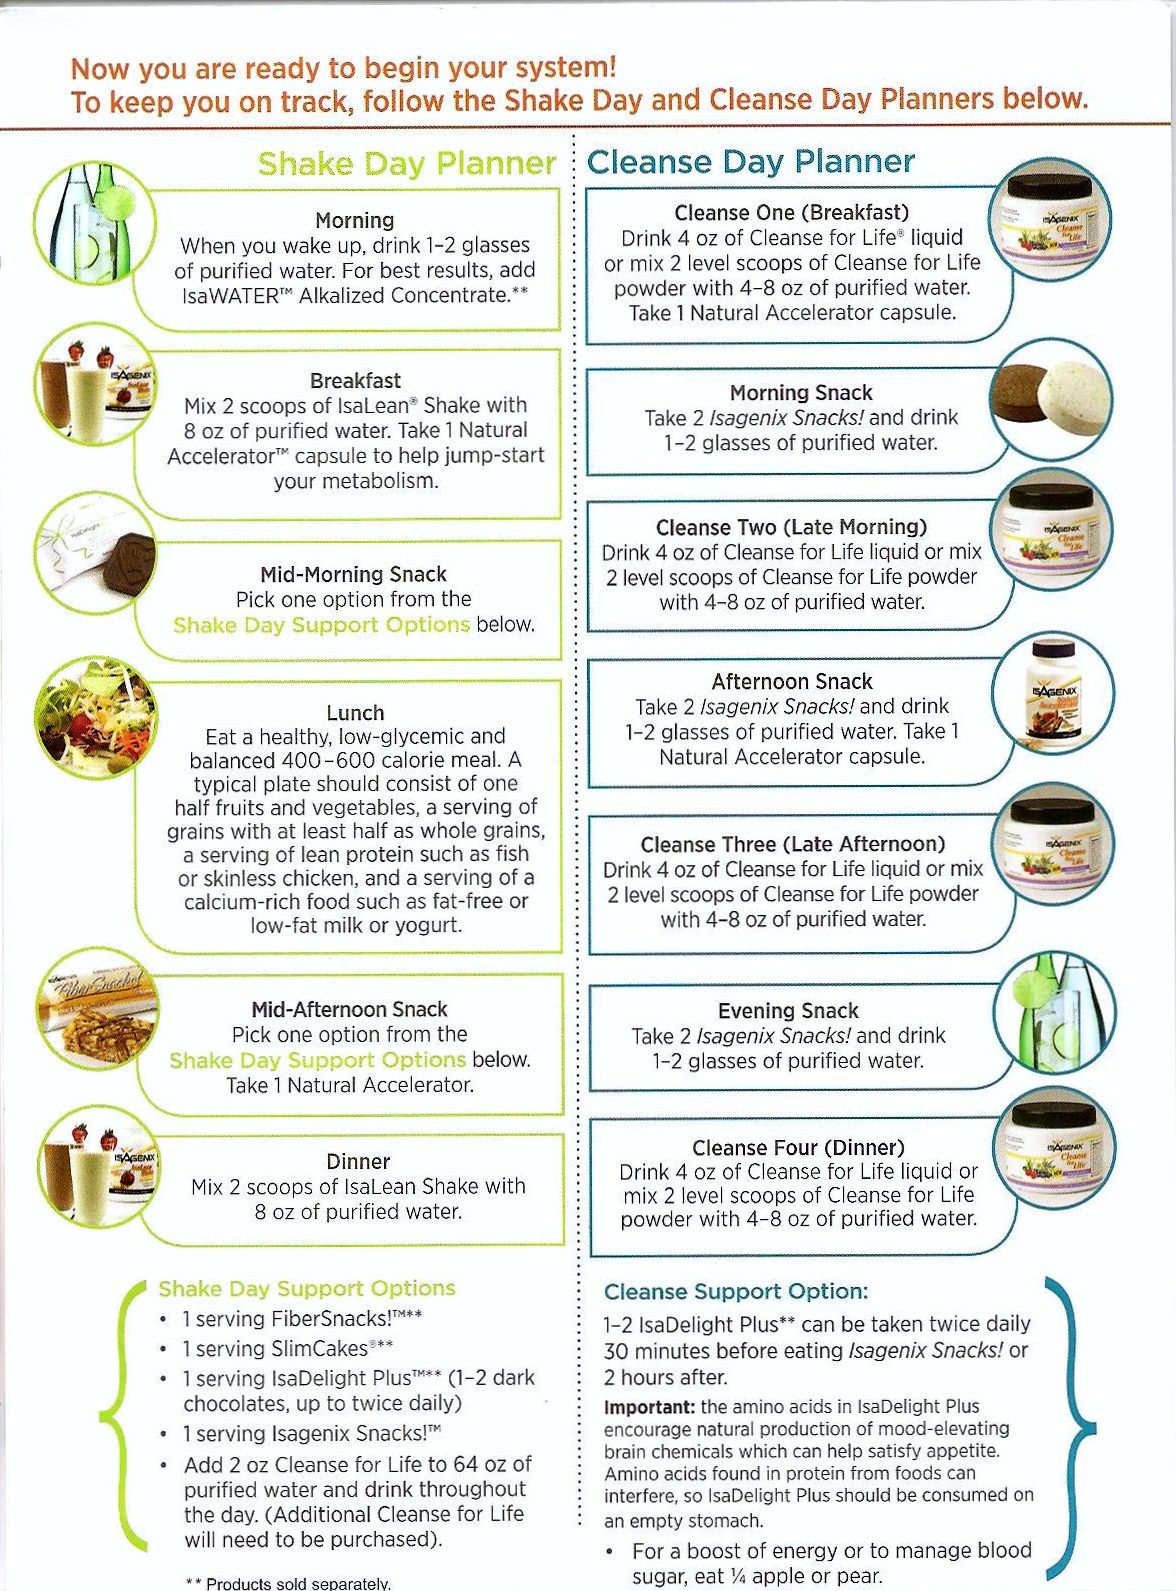 Isagenix Shake Day Planner Cleanse Day Planner   Isagenix Regarding Isagenix Cleanse Day Schedule Printable